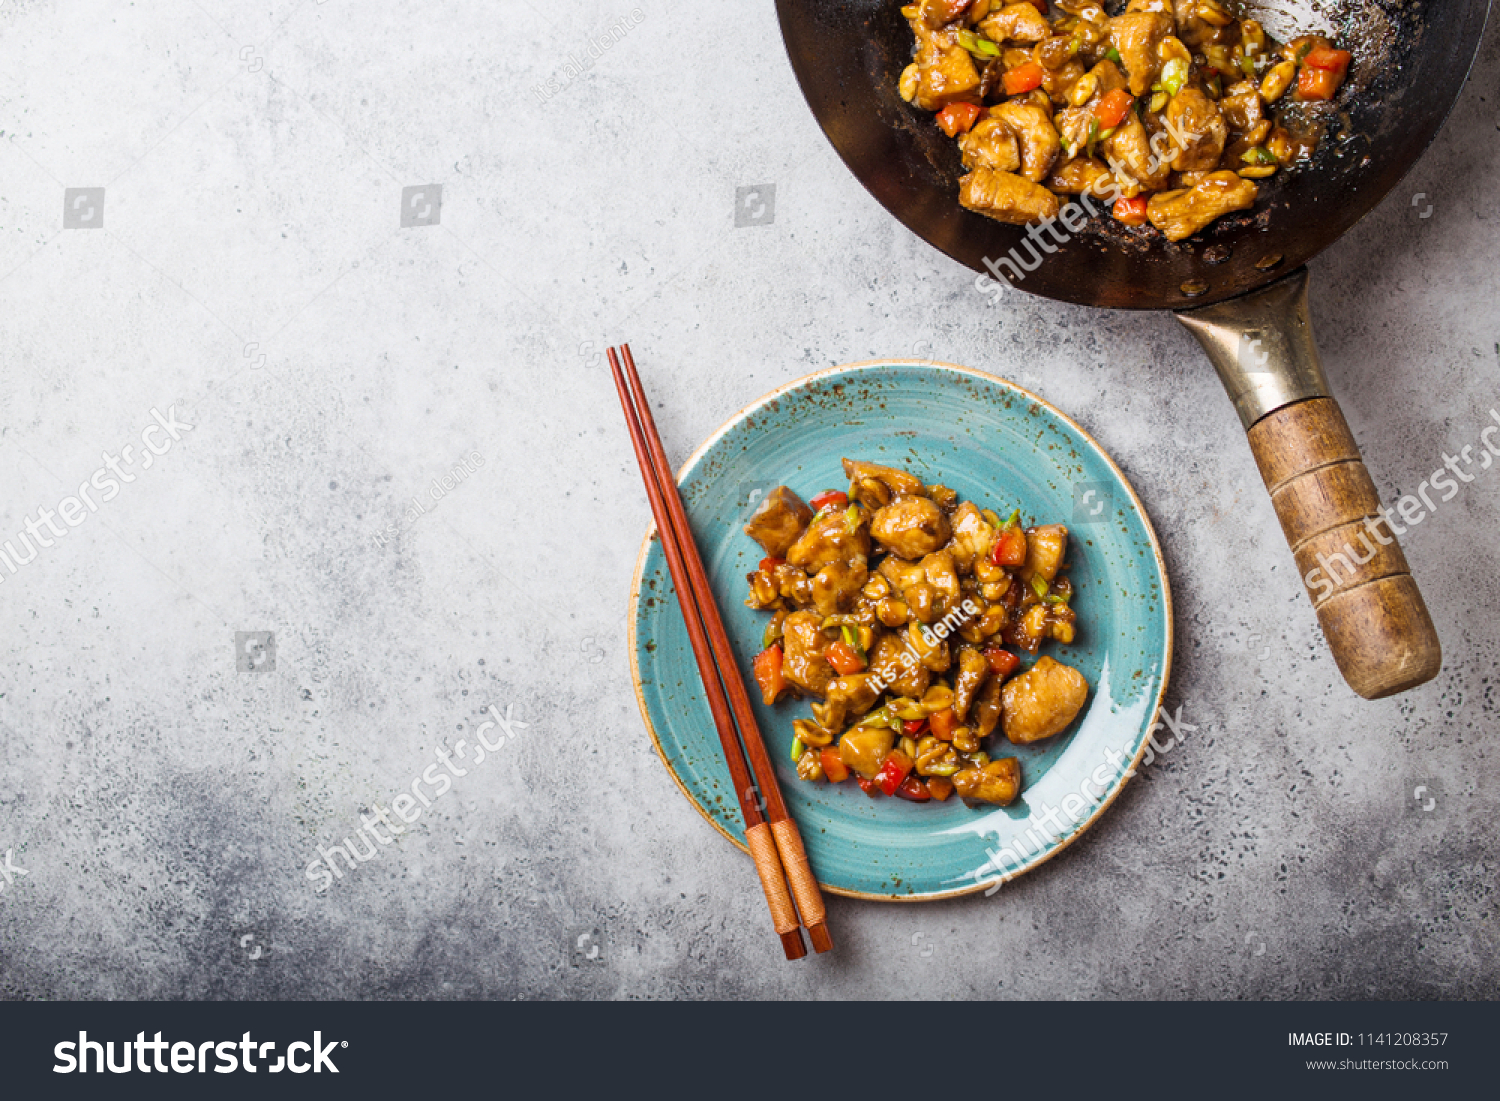 Top view of Kung Pao chicken on plate ready for eat, space for text. Stir-fried Chinese traditional dish with chicken, peanuts, vegetables, chili peppers. Chinese dinner, chopsticks, stone background  #1141208357